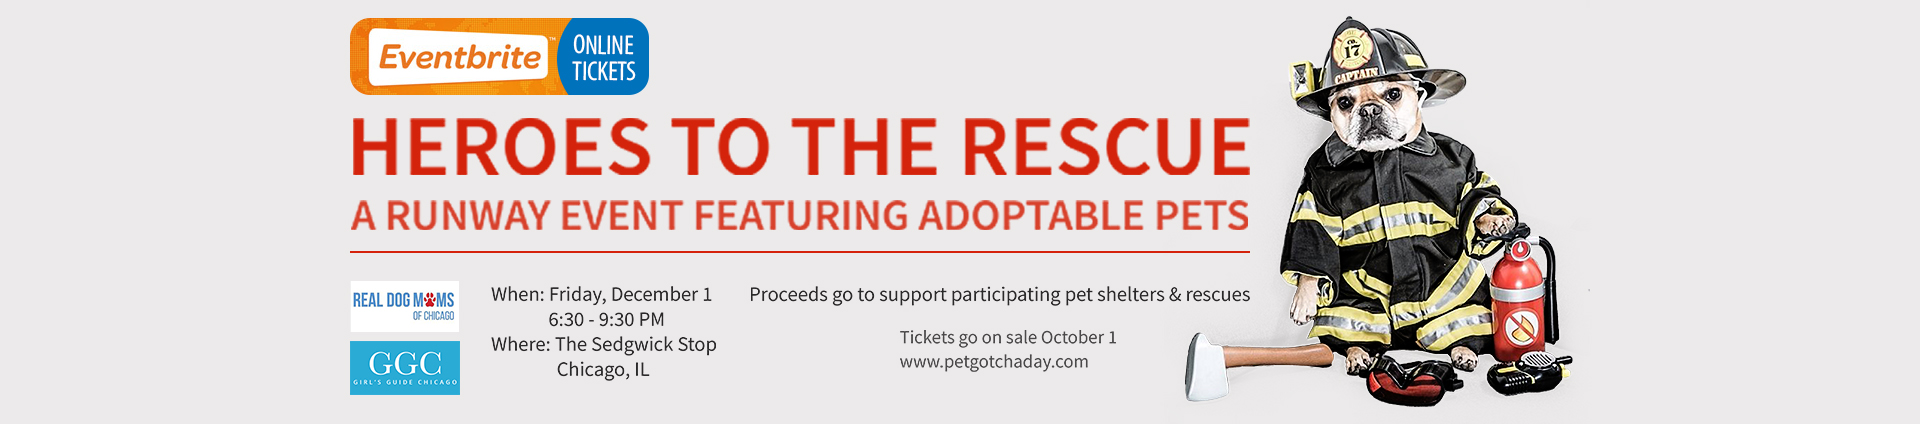 easily adopt pets, dogs, cats and animals at shelters and rescues near you and be a part of the pet adoption, animal rescue and welfare movement.